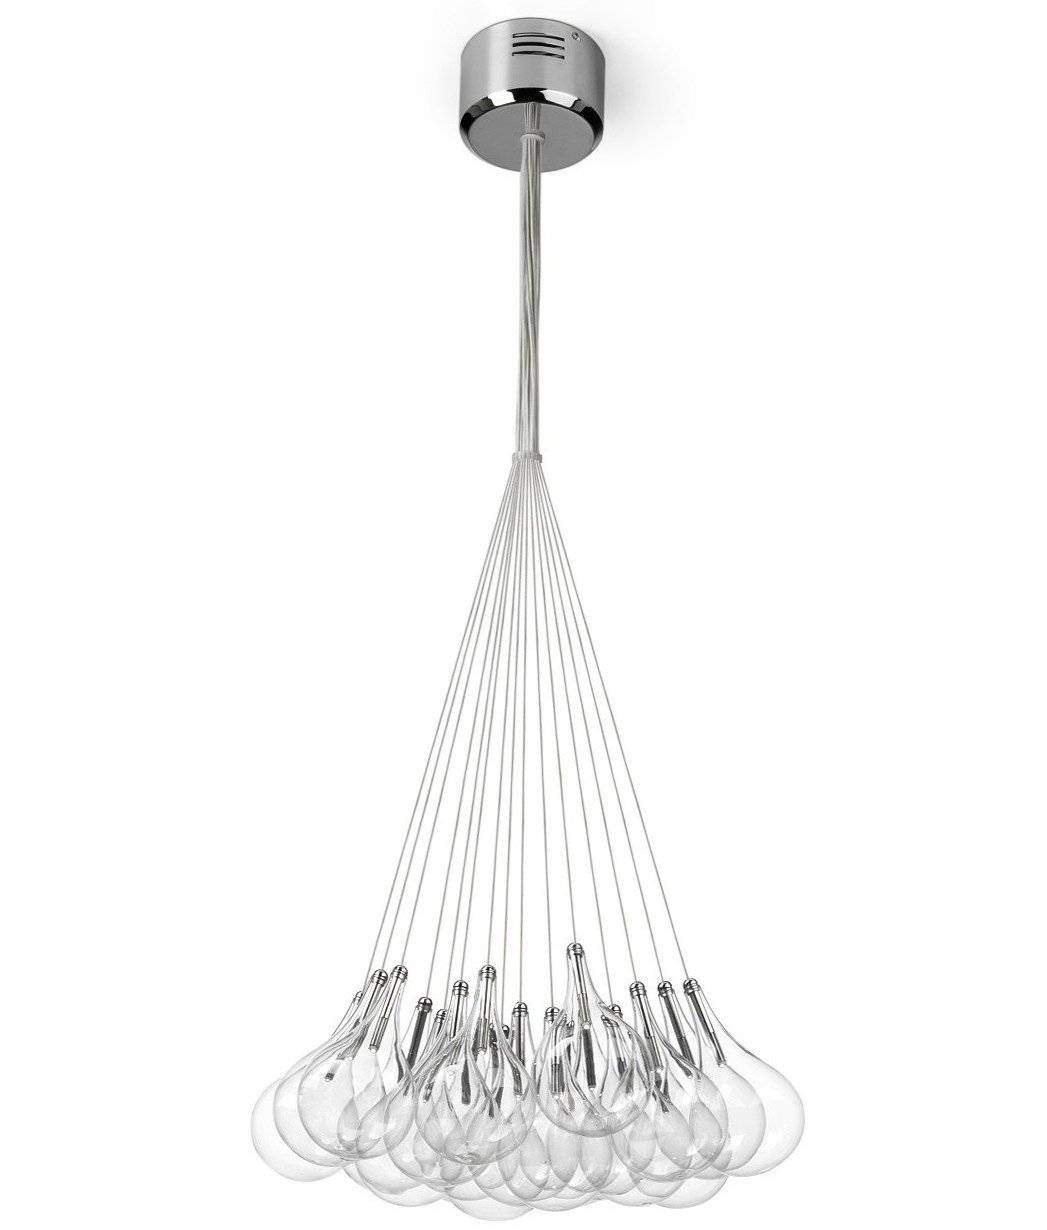 Teardrop Cluster Hanging Pendant With 19 Or 37 Glass Shades With Regard To Cluster Glass Pendant Light Fixtures (View 13 of 15)